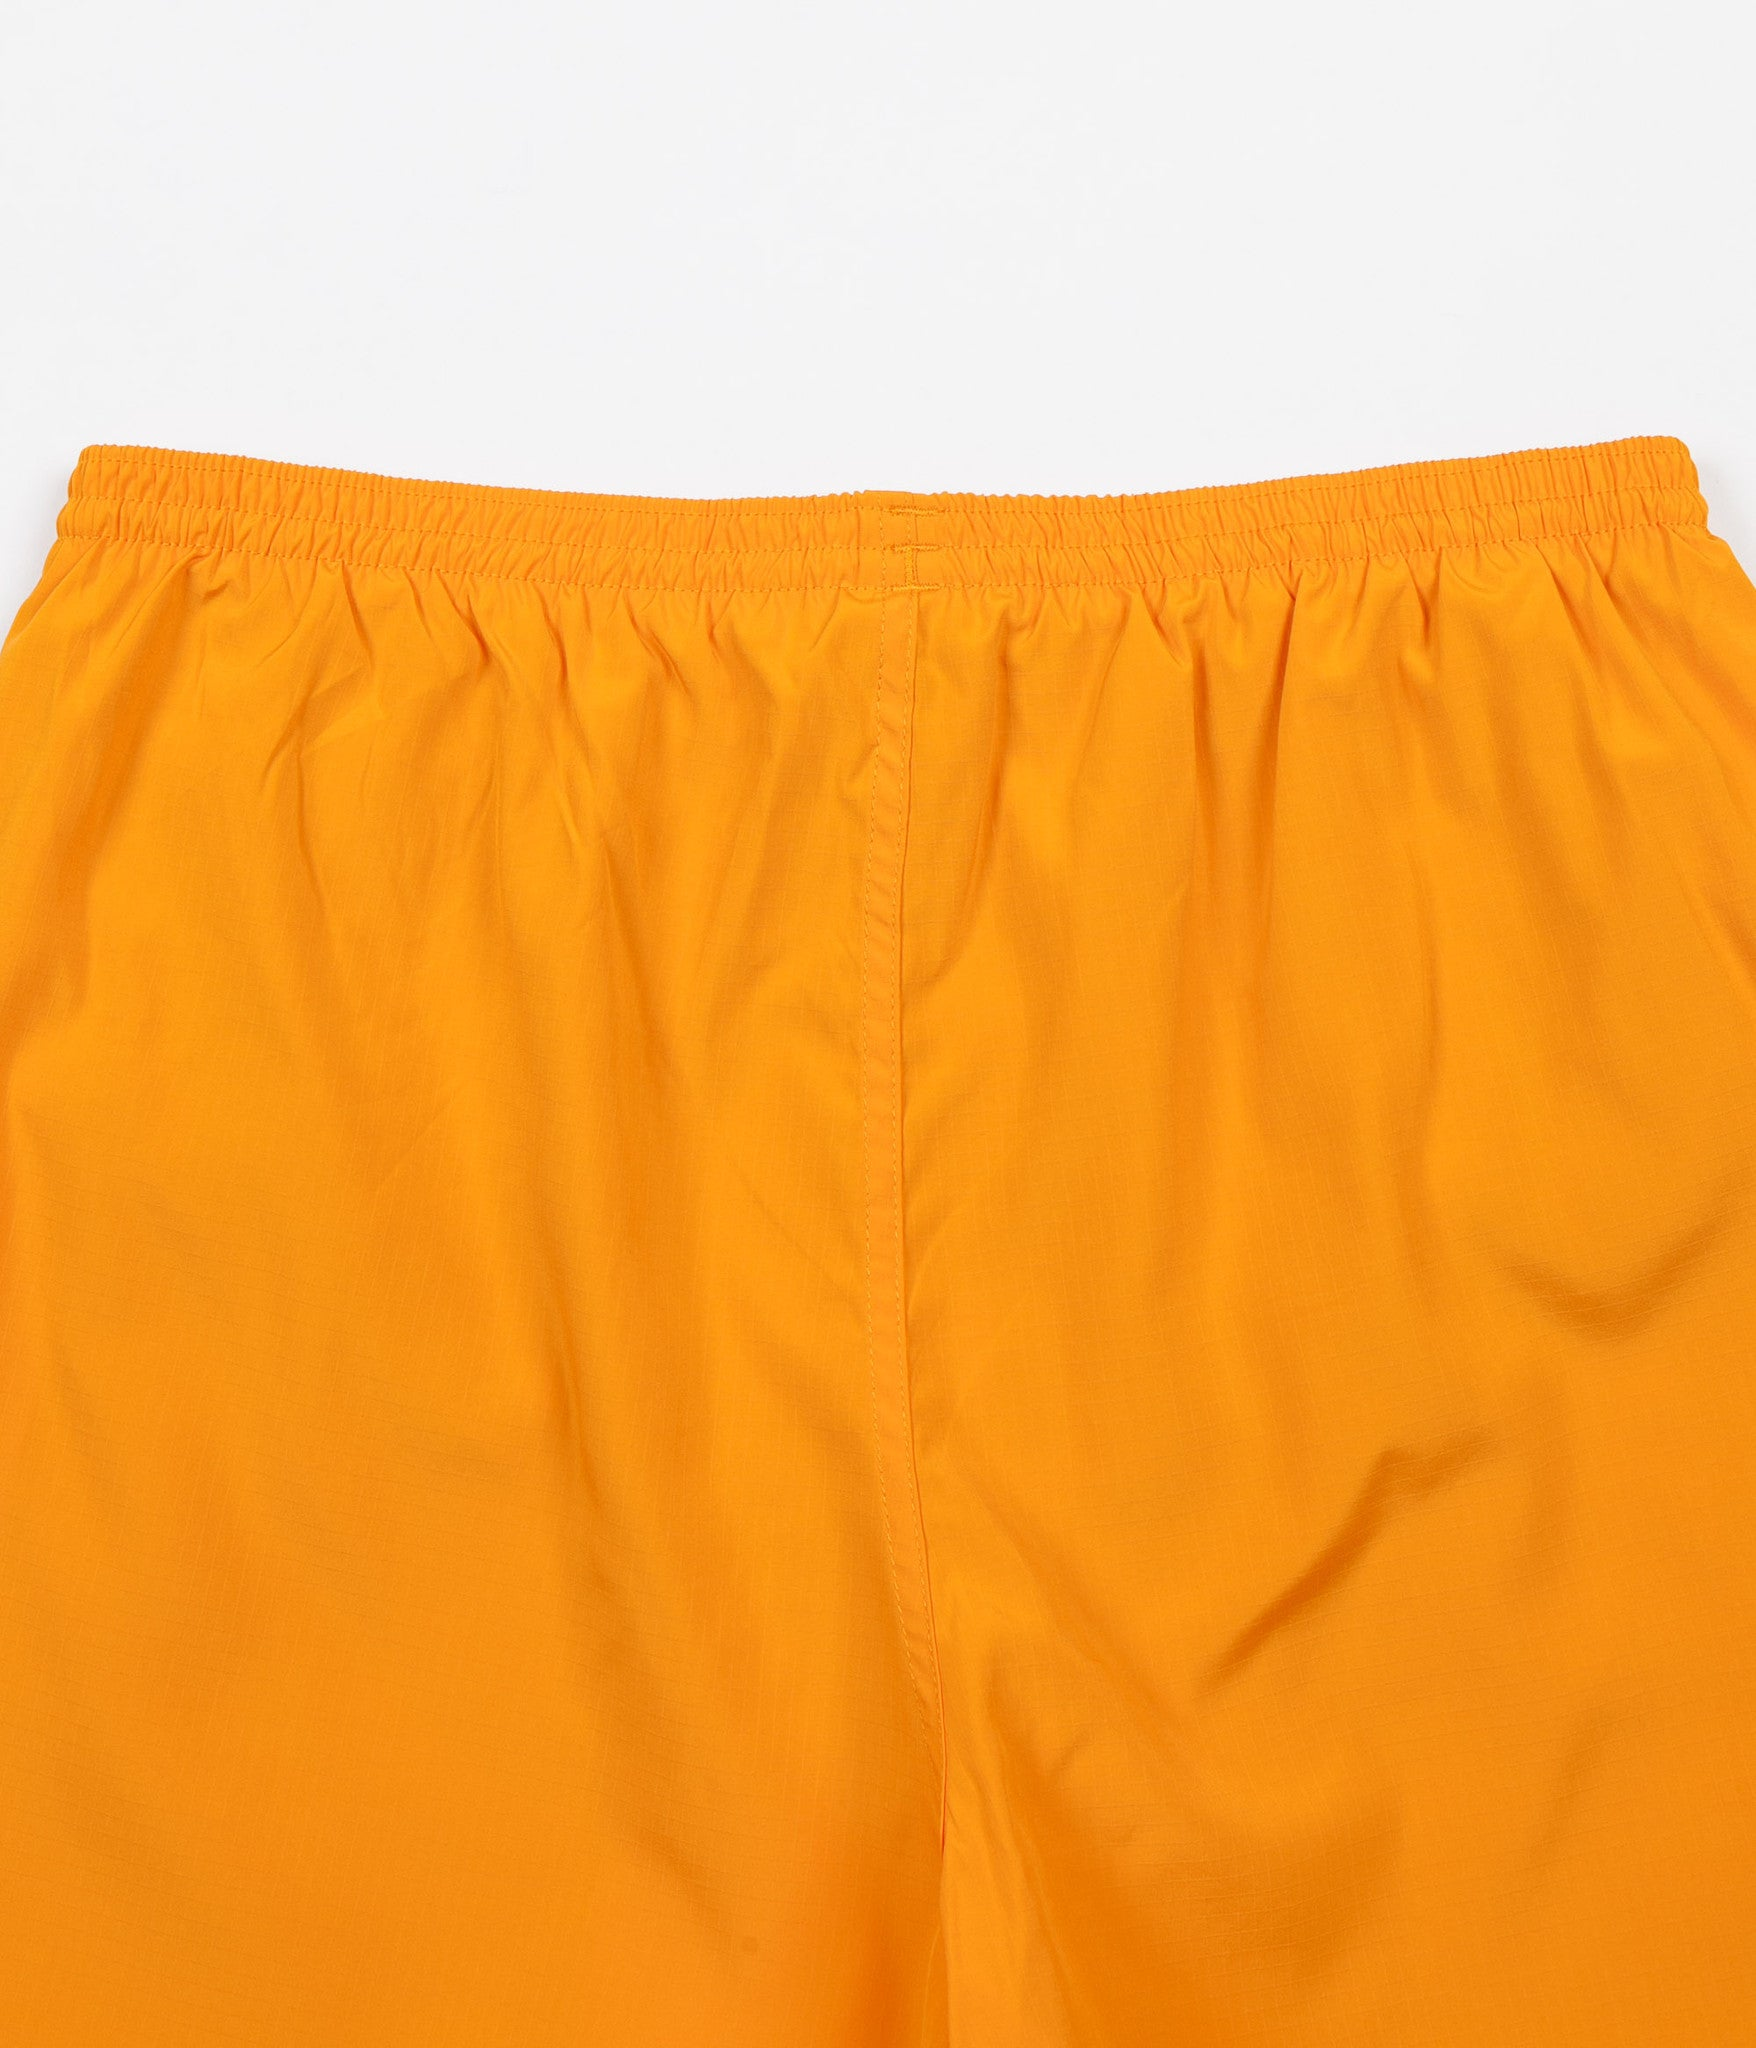 Patagonia Baggies Lights Shorts - Sporty Orange